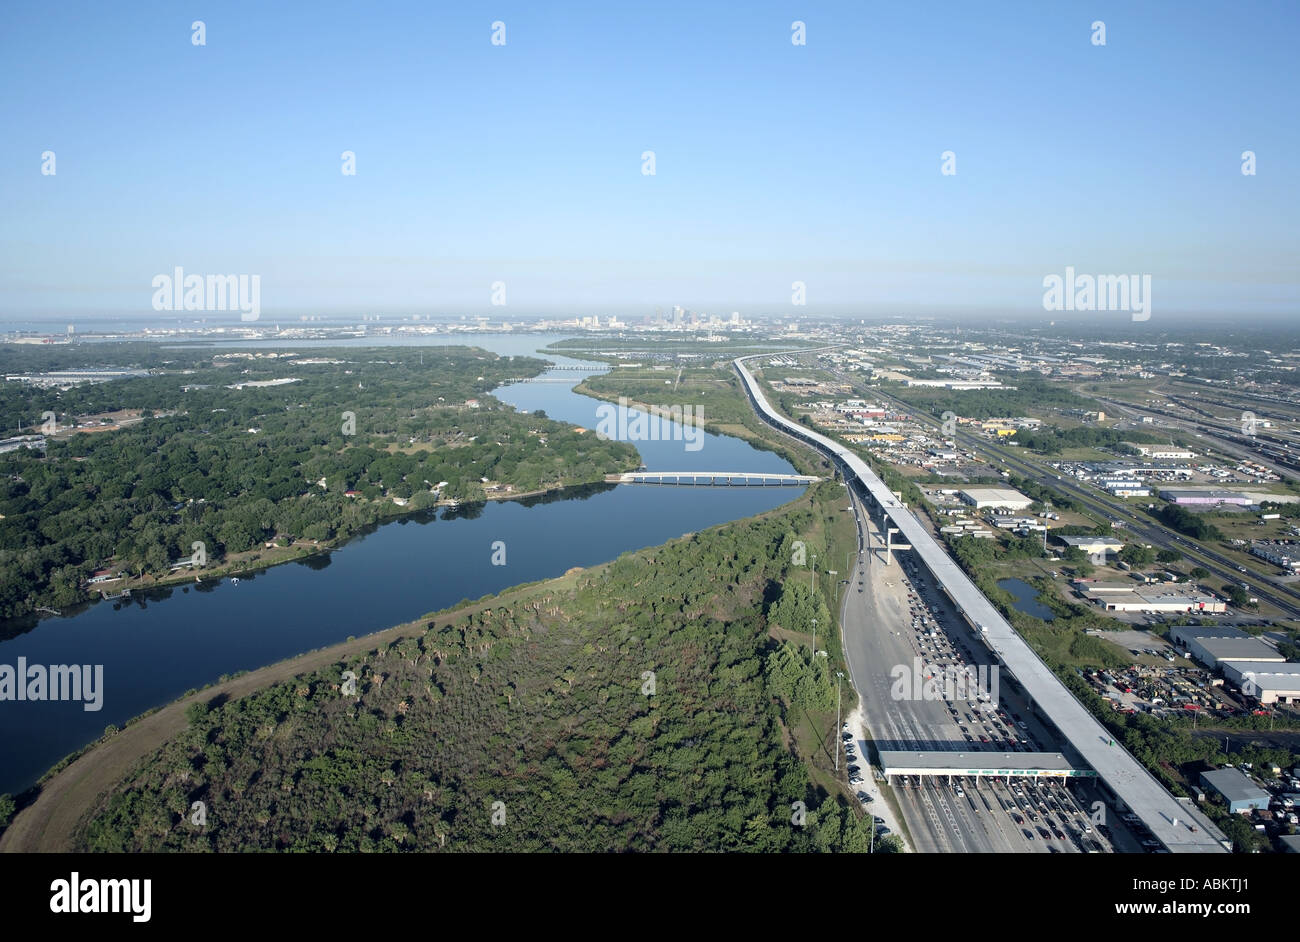 Aerial photo of Tampa skyline crosstown express highway McKay Bay view from Tampa Bypass Canal Florida - Stock Image